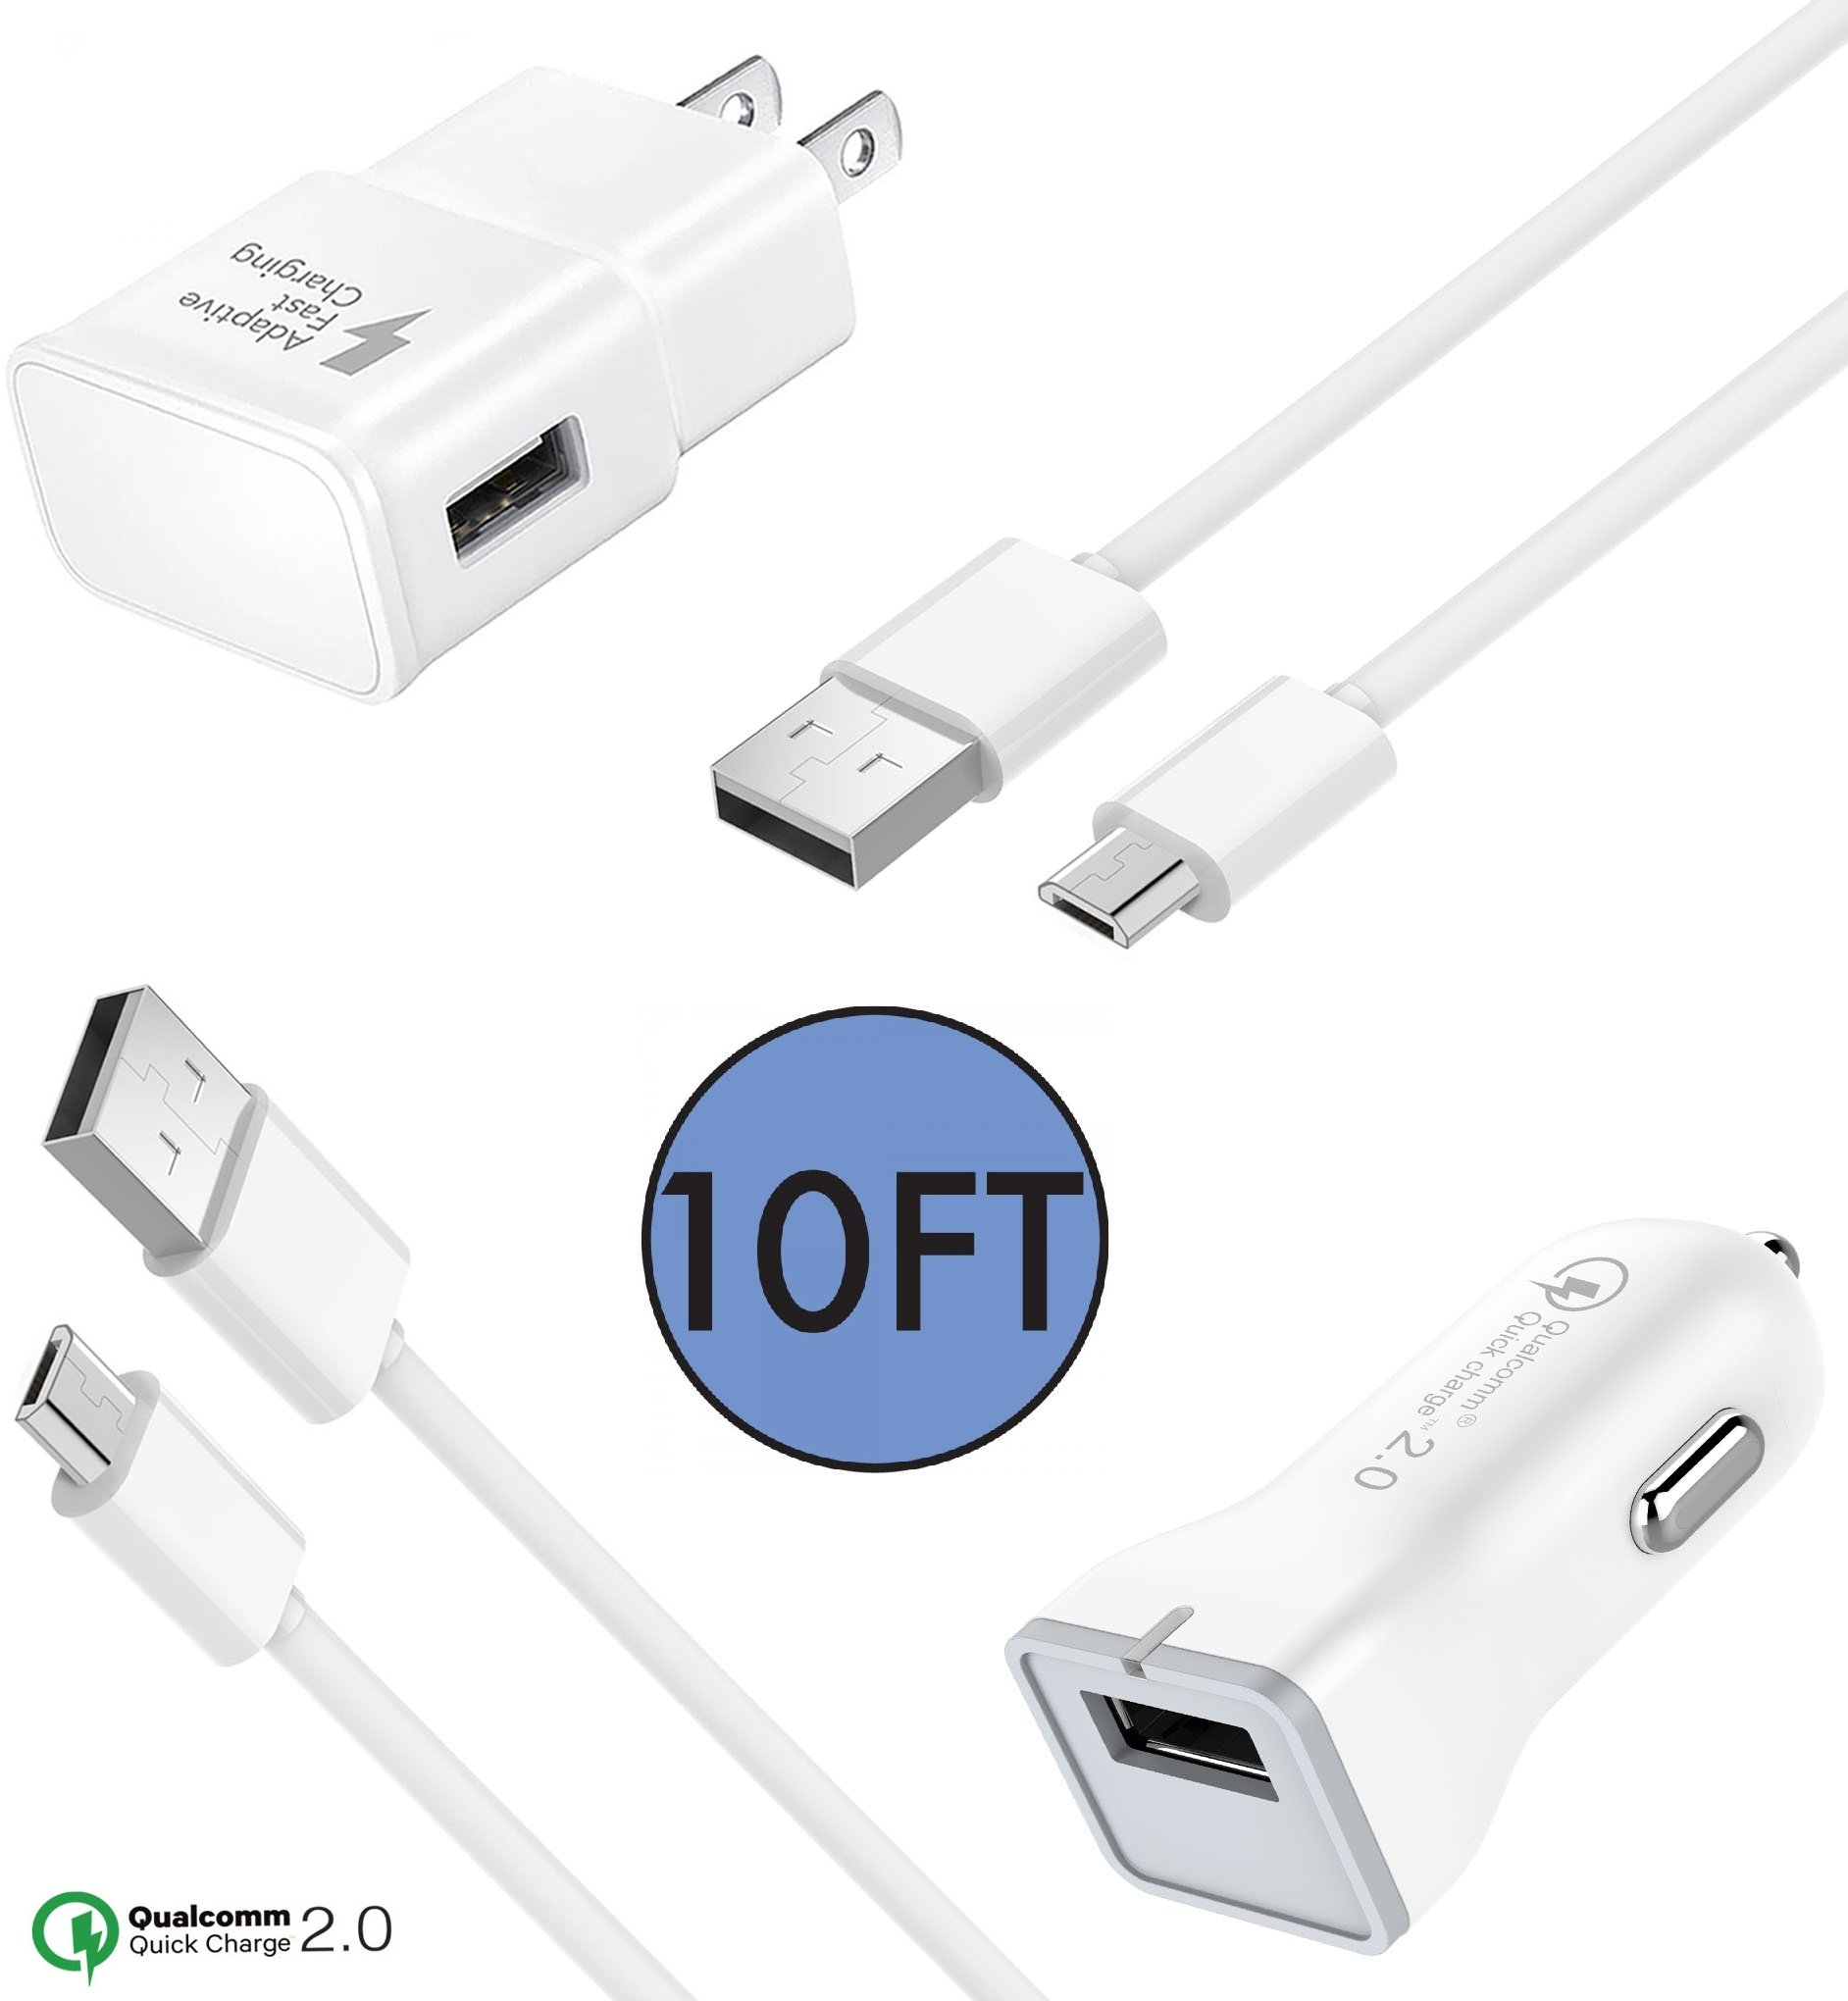 Samsung Galaxy S7 / S6 / S7 Edge / Note 5 / S6 Active Charger by ixir combo Charger! (Wall Charger + Fast Car Charger + 2 Micro Cable) ] Fast Charging Charge up to 50% faster! – White (10 FEET)